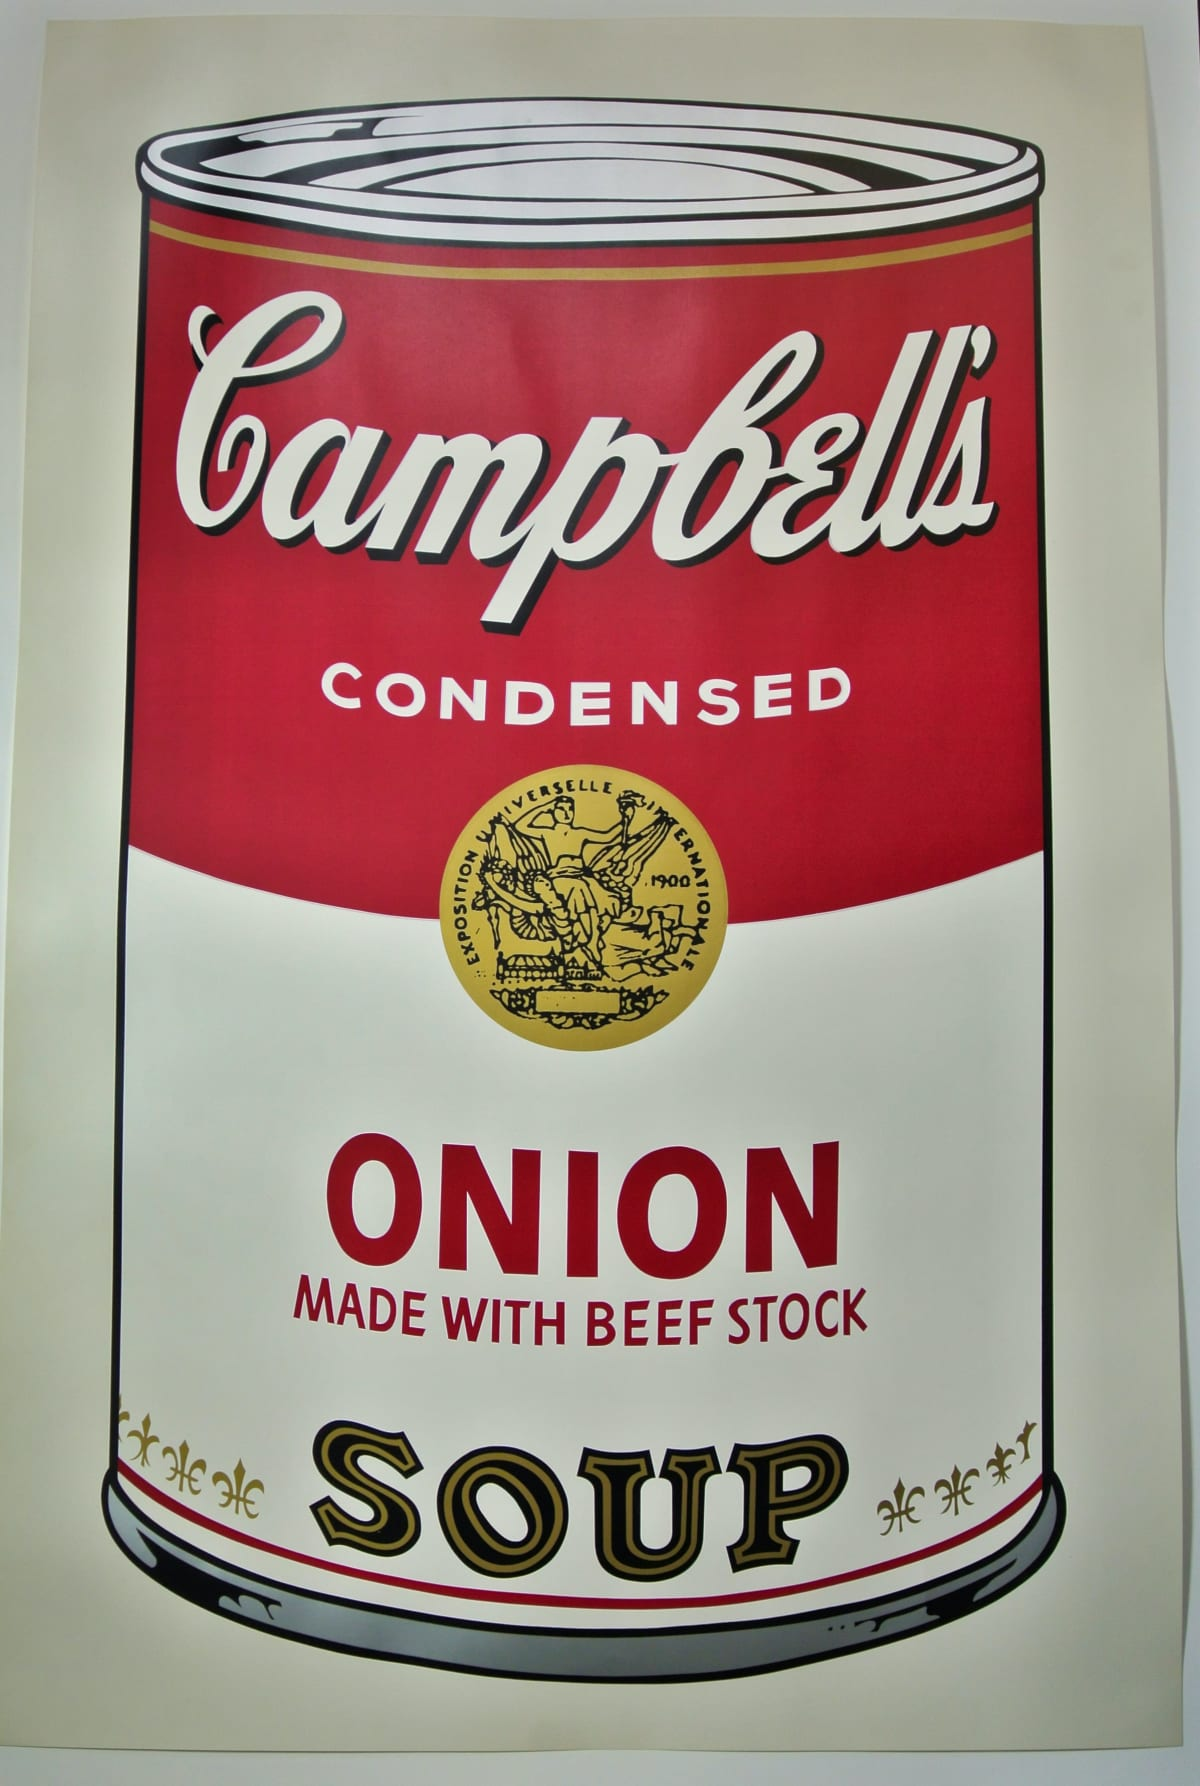 Campbell's I, Onion Soup, 1968 by Andy Warhol, Screenprint from an edition of 250 at Coskun Fine Art